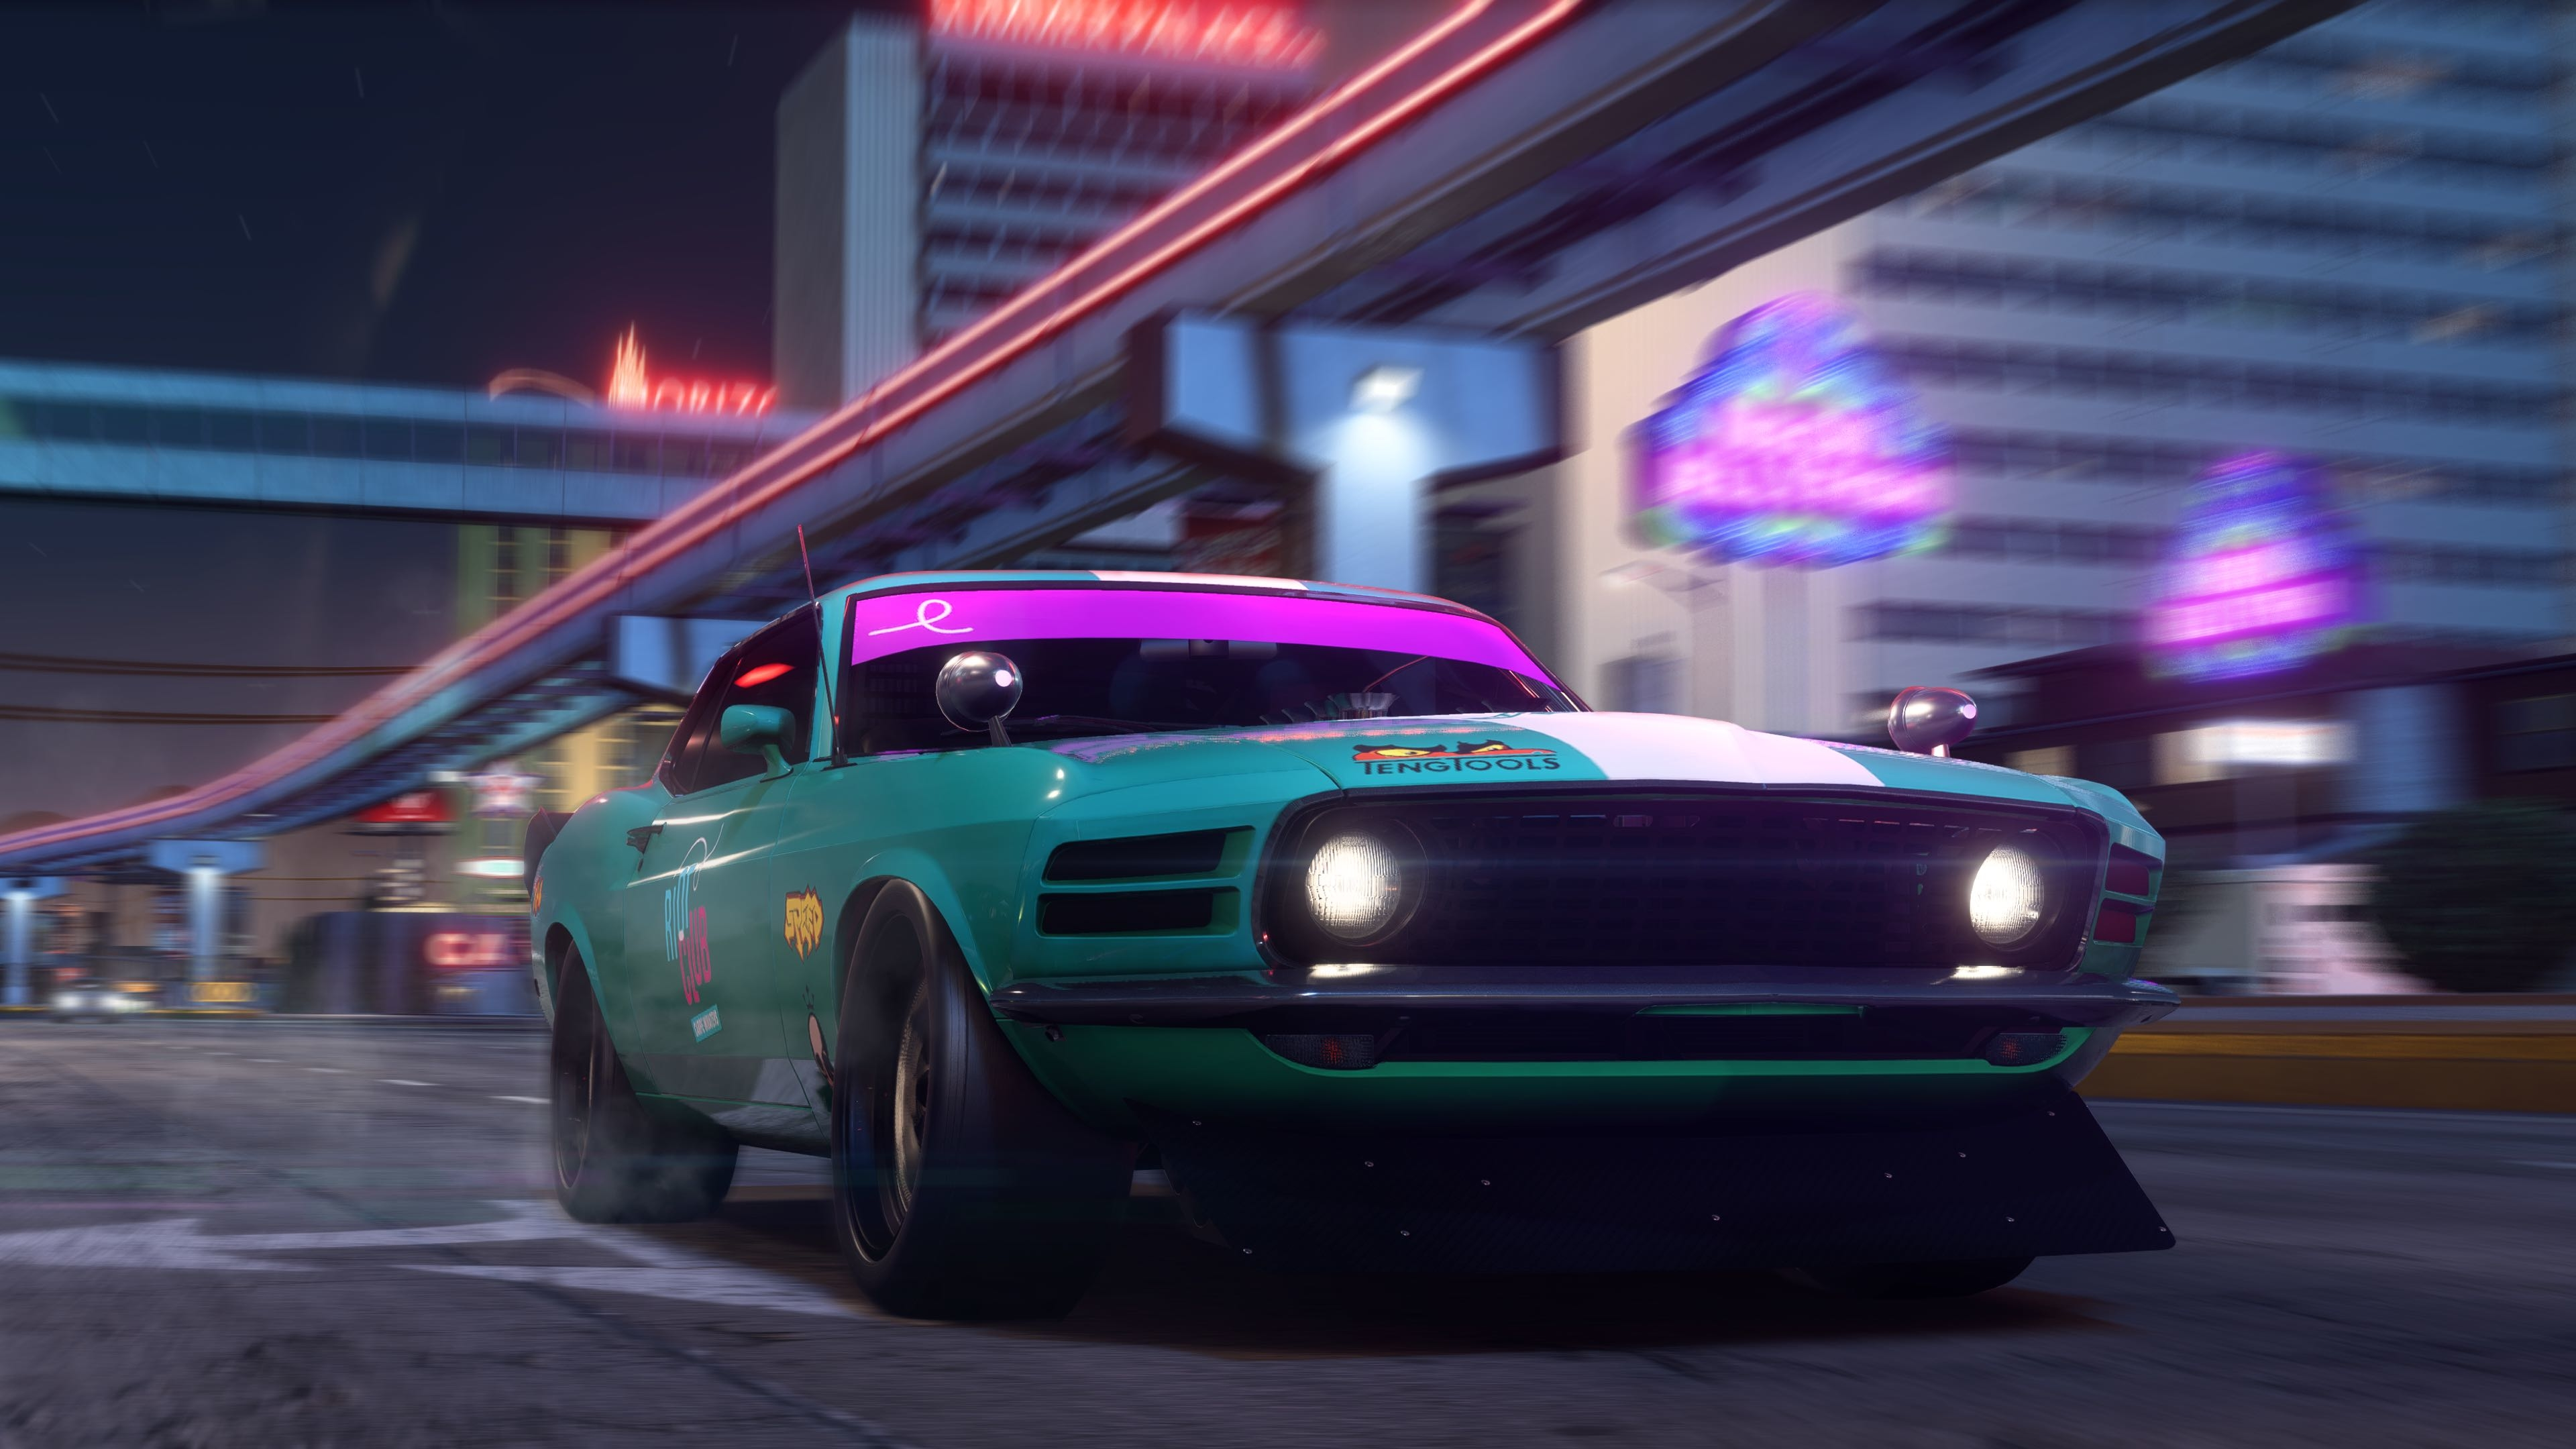 Riot Club Street Leagues Need For Speed Payback 2017 HD 3840x2160